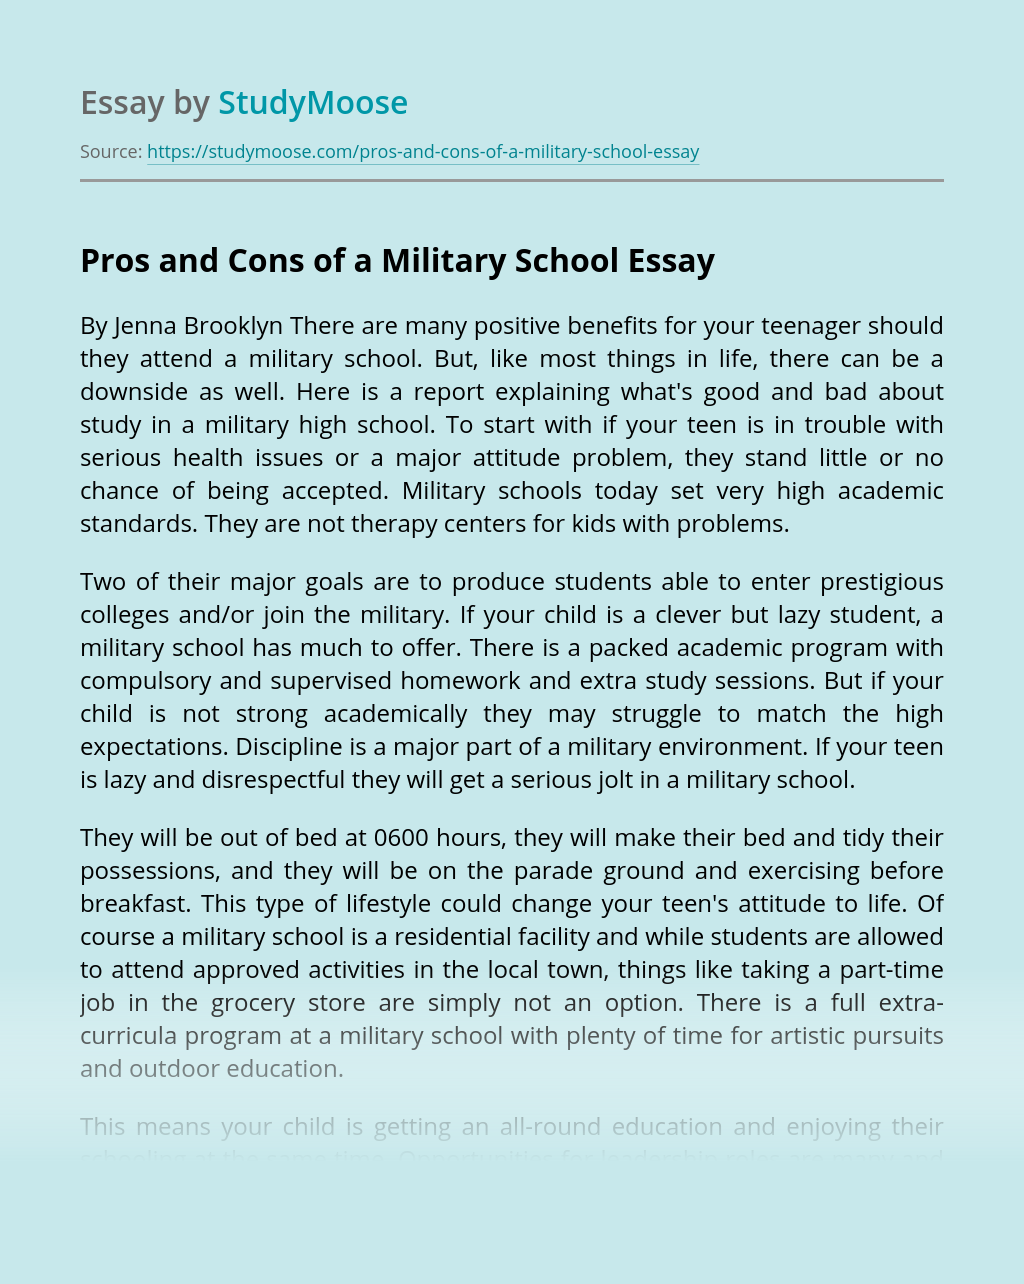 Pros and Cons of a Military School